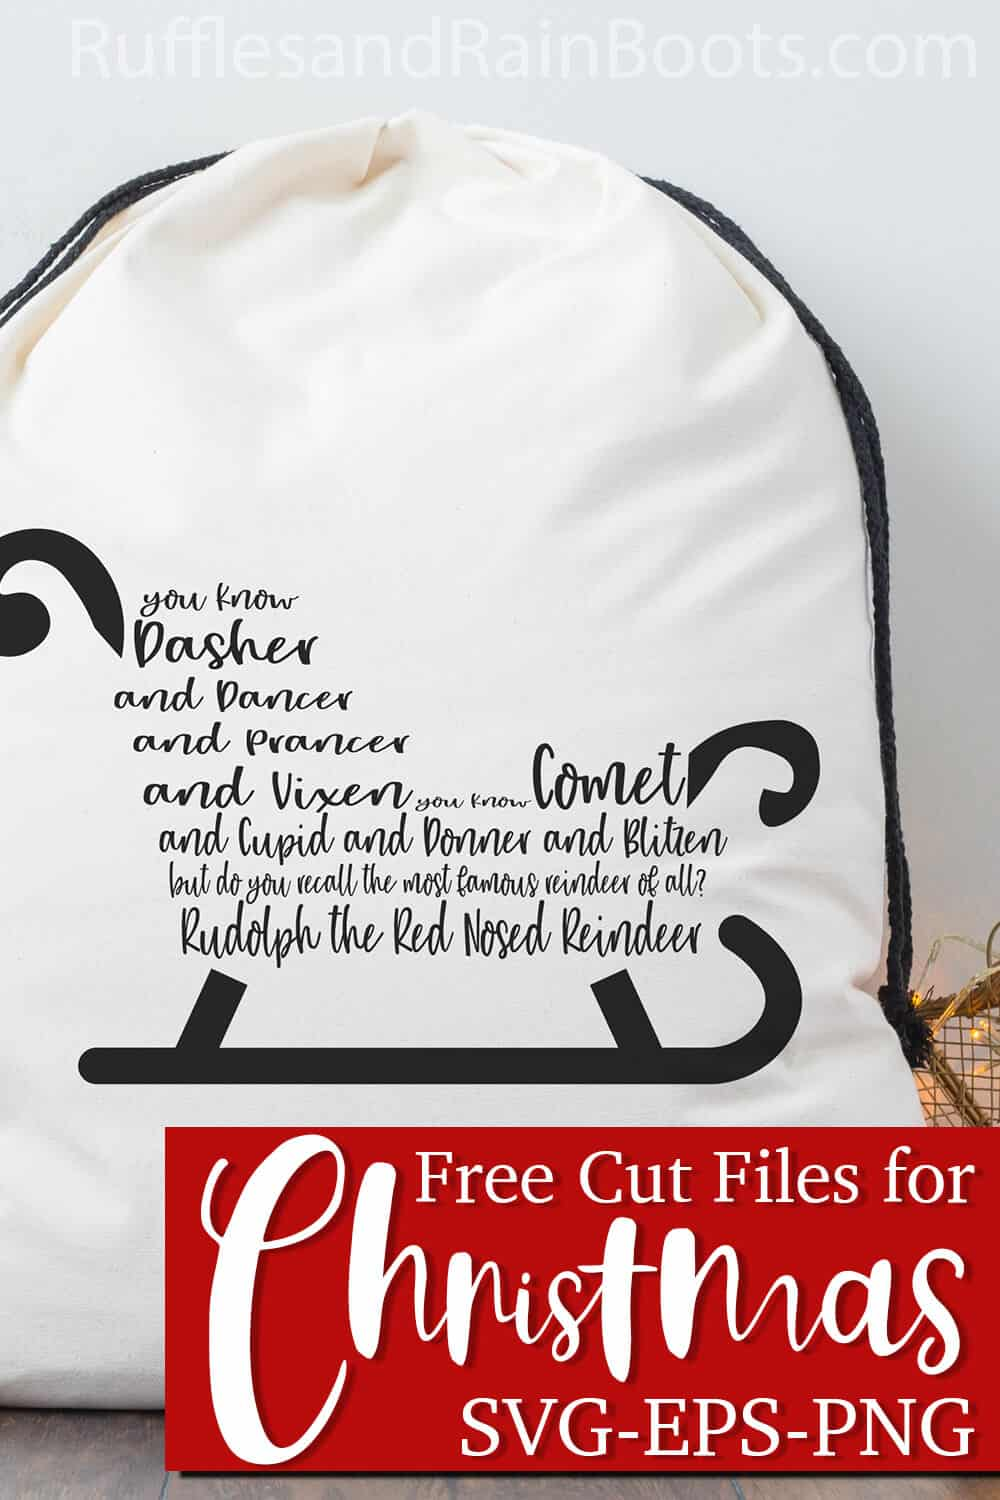 large gift bag for Christmas with a holiday cut file for Cricut or Silhouette with text which reads free cut files for christmas svg eps png